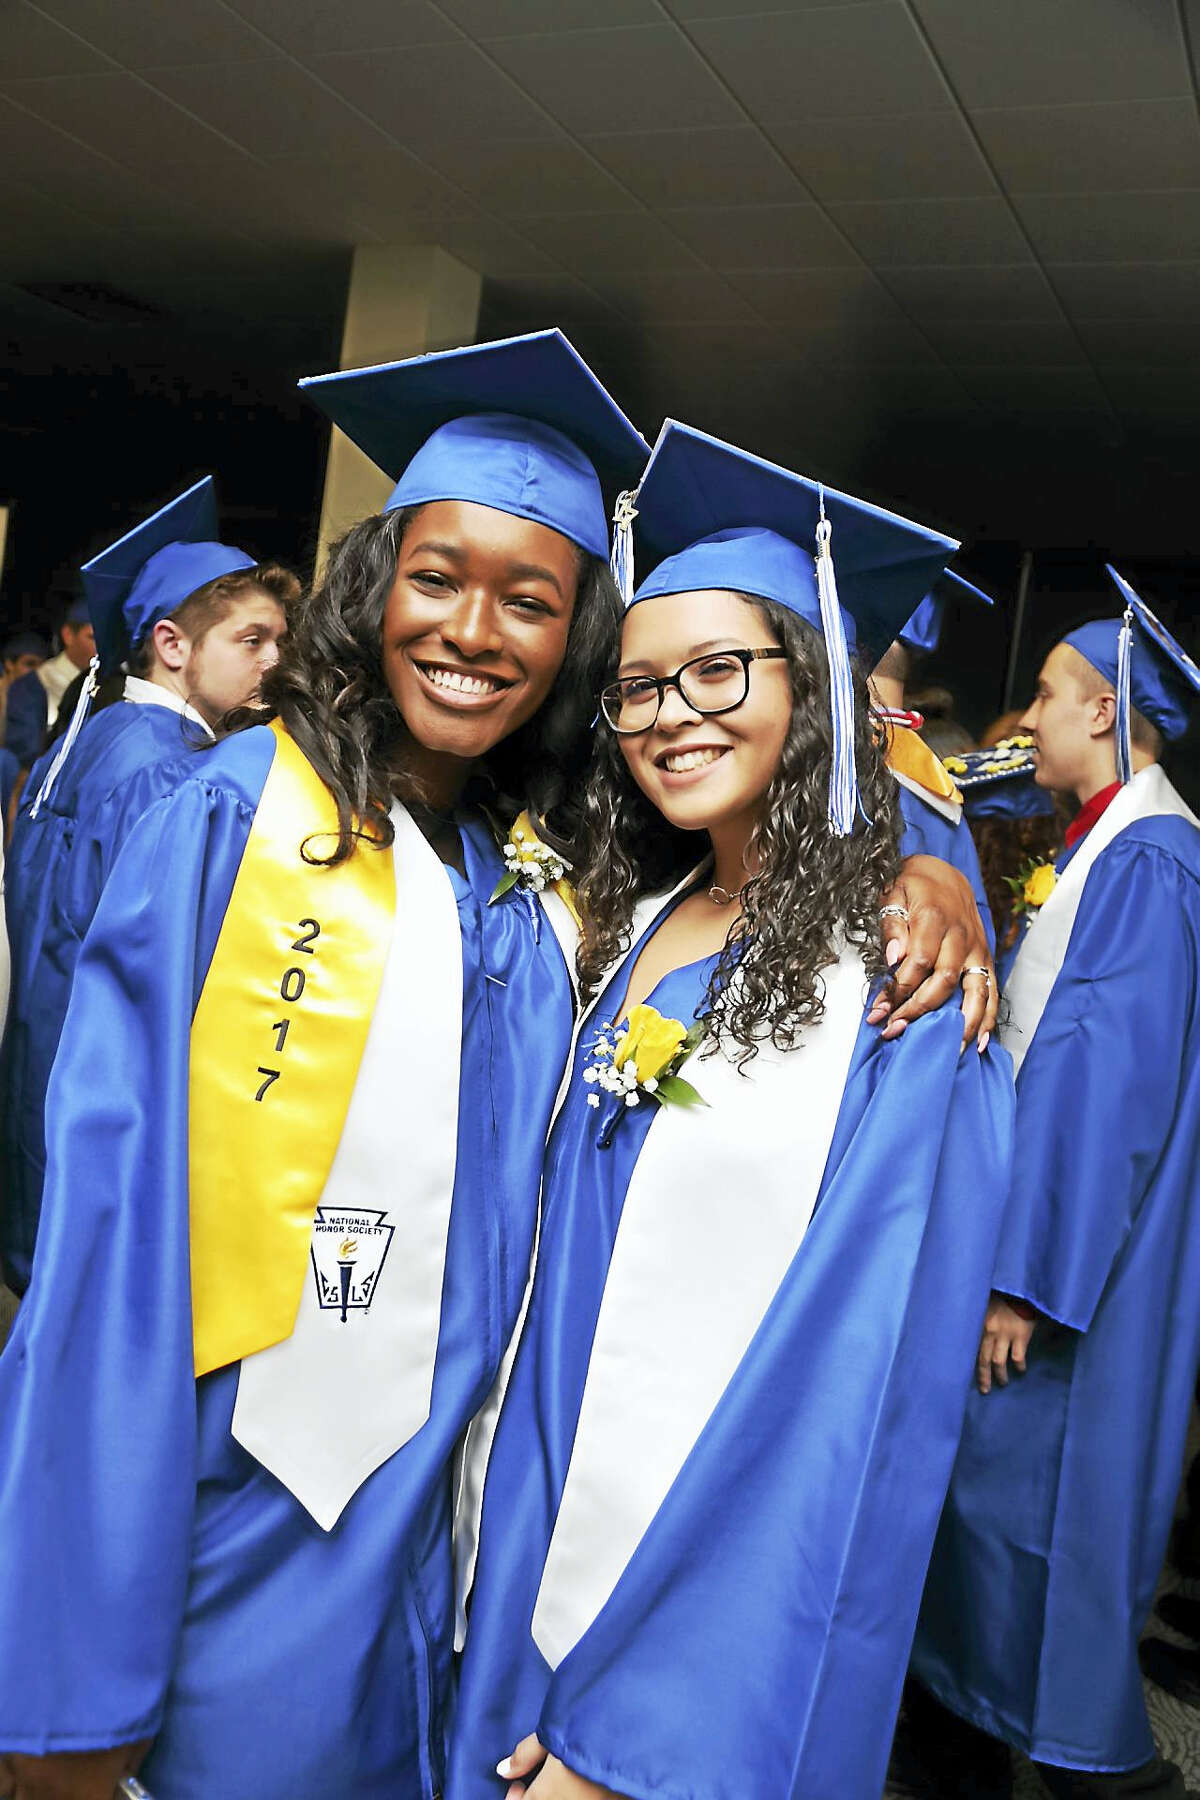 Oliver Wolcott Tech seniors Anya Stephenson, left, and Demarius Dy-Dajnowicz, are all smiles as they prepare to graduate on Friday, June 16. The ceremonies were held at the Warner Theatre in Torrington.